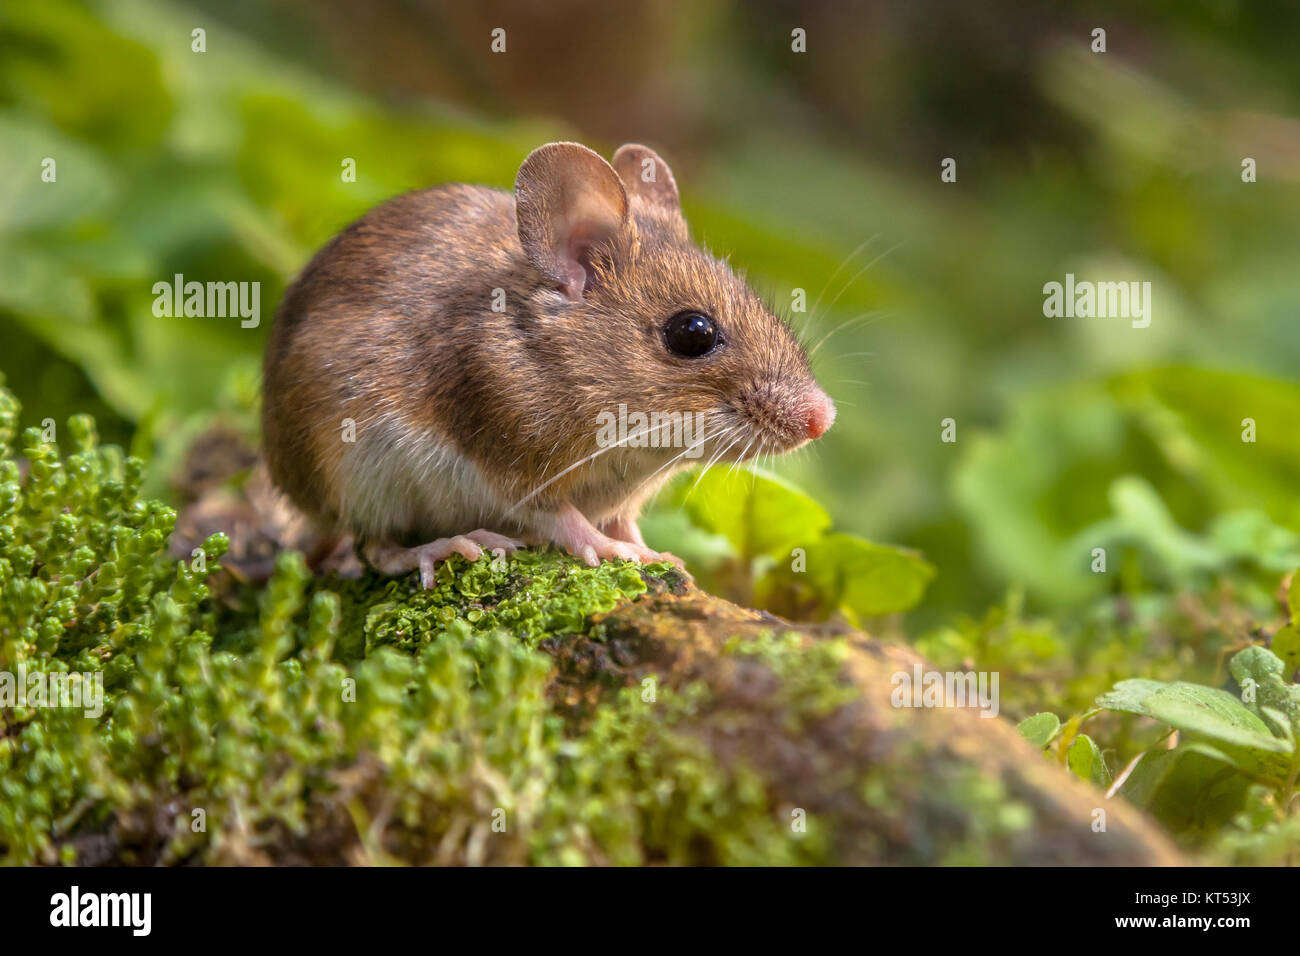 Cute Wild Wood mouse resting on a stick on the forest floor with lush green vegetation - Stock Image